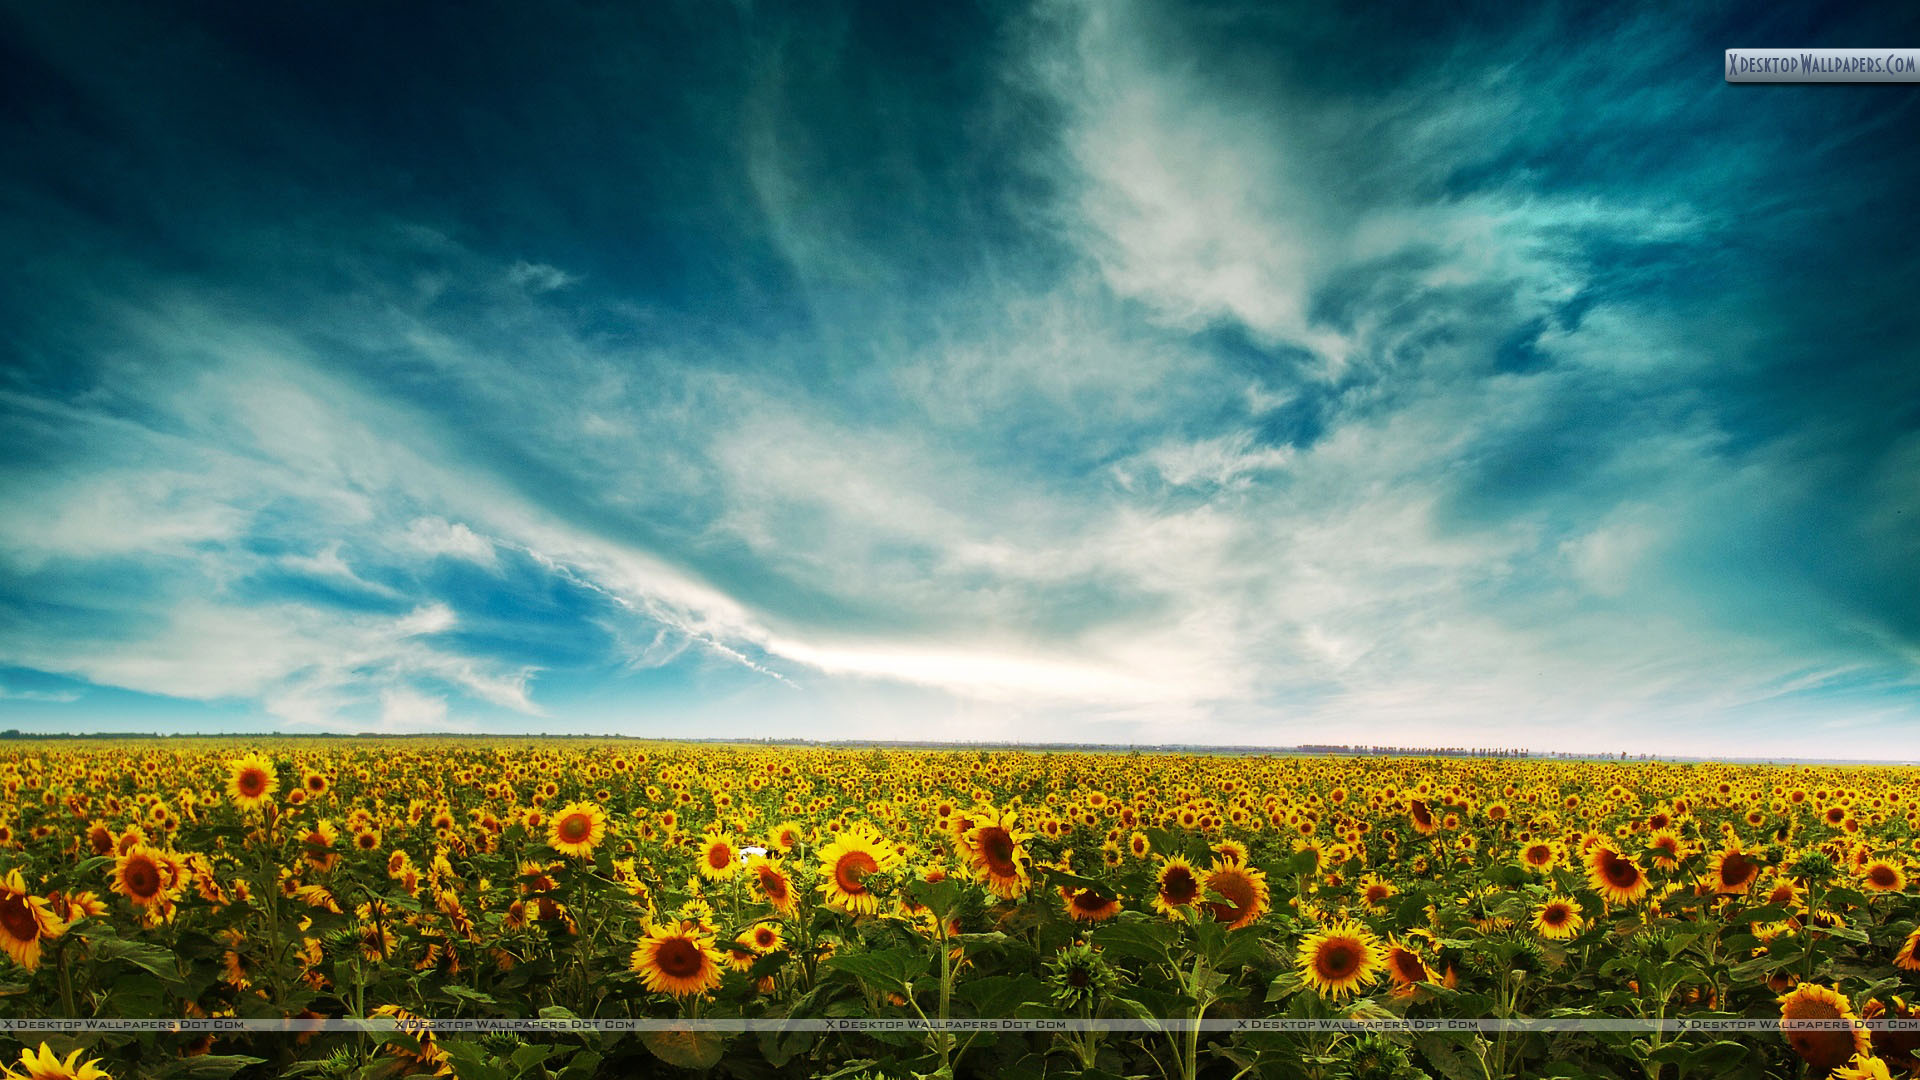 sunflowers landscape wallpaper